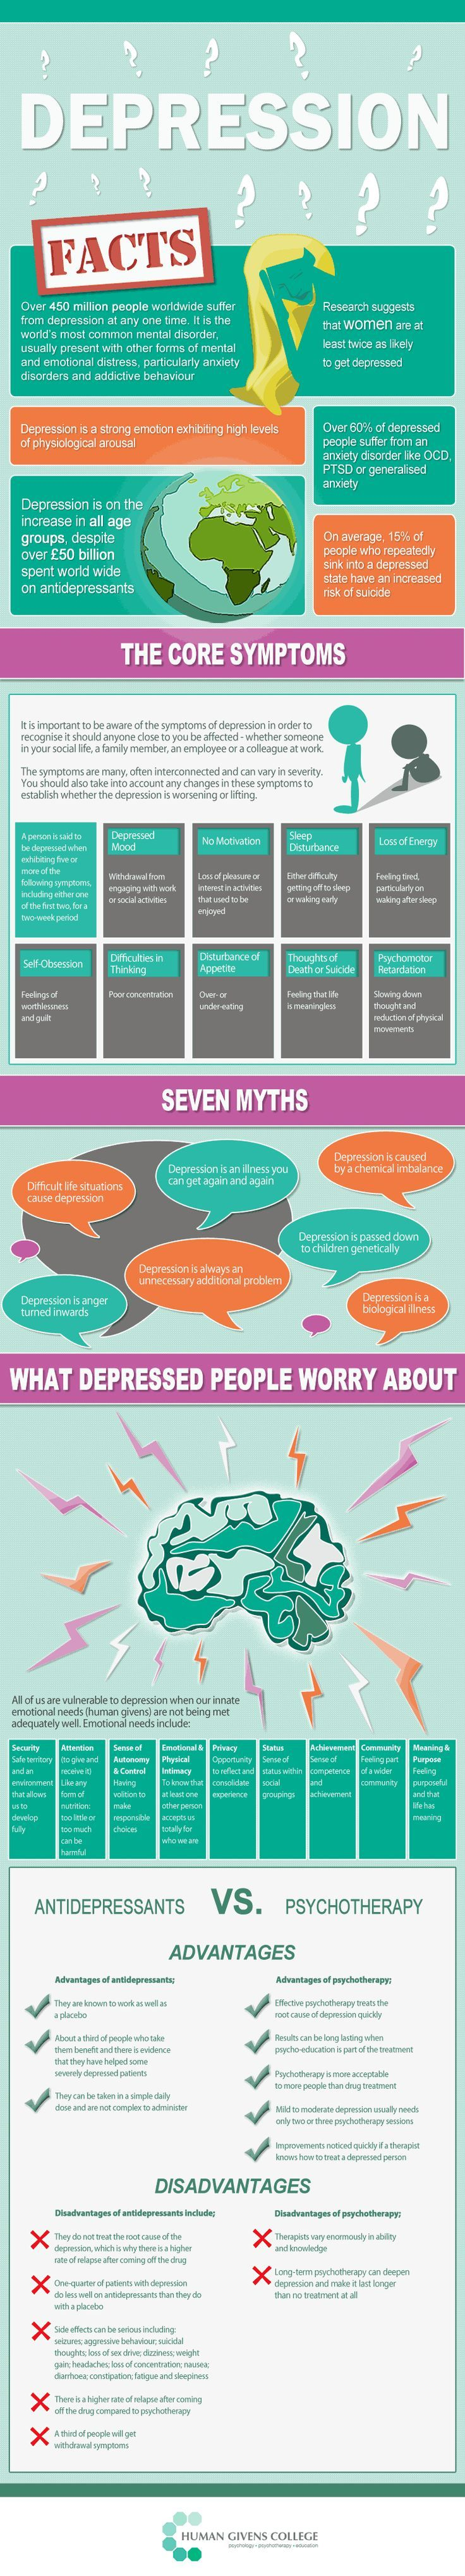 Depression Can Kill! Educate Yourself And Make A Difference! by thot4food | Fawesome.tv